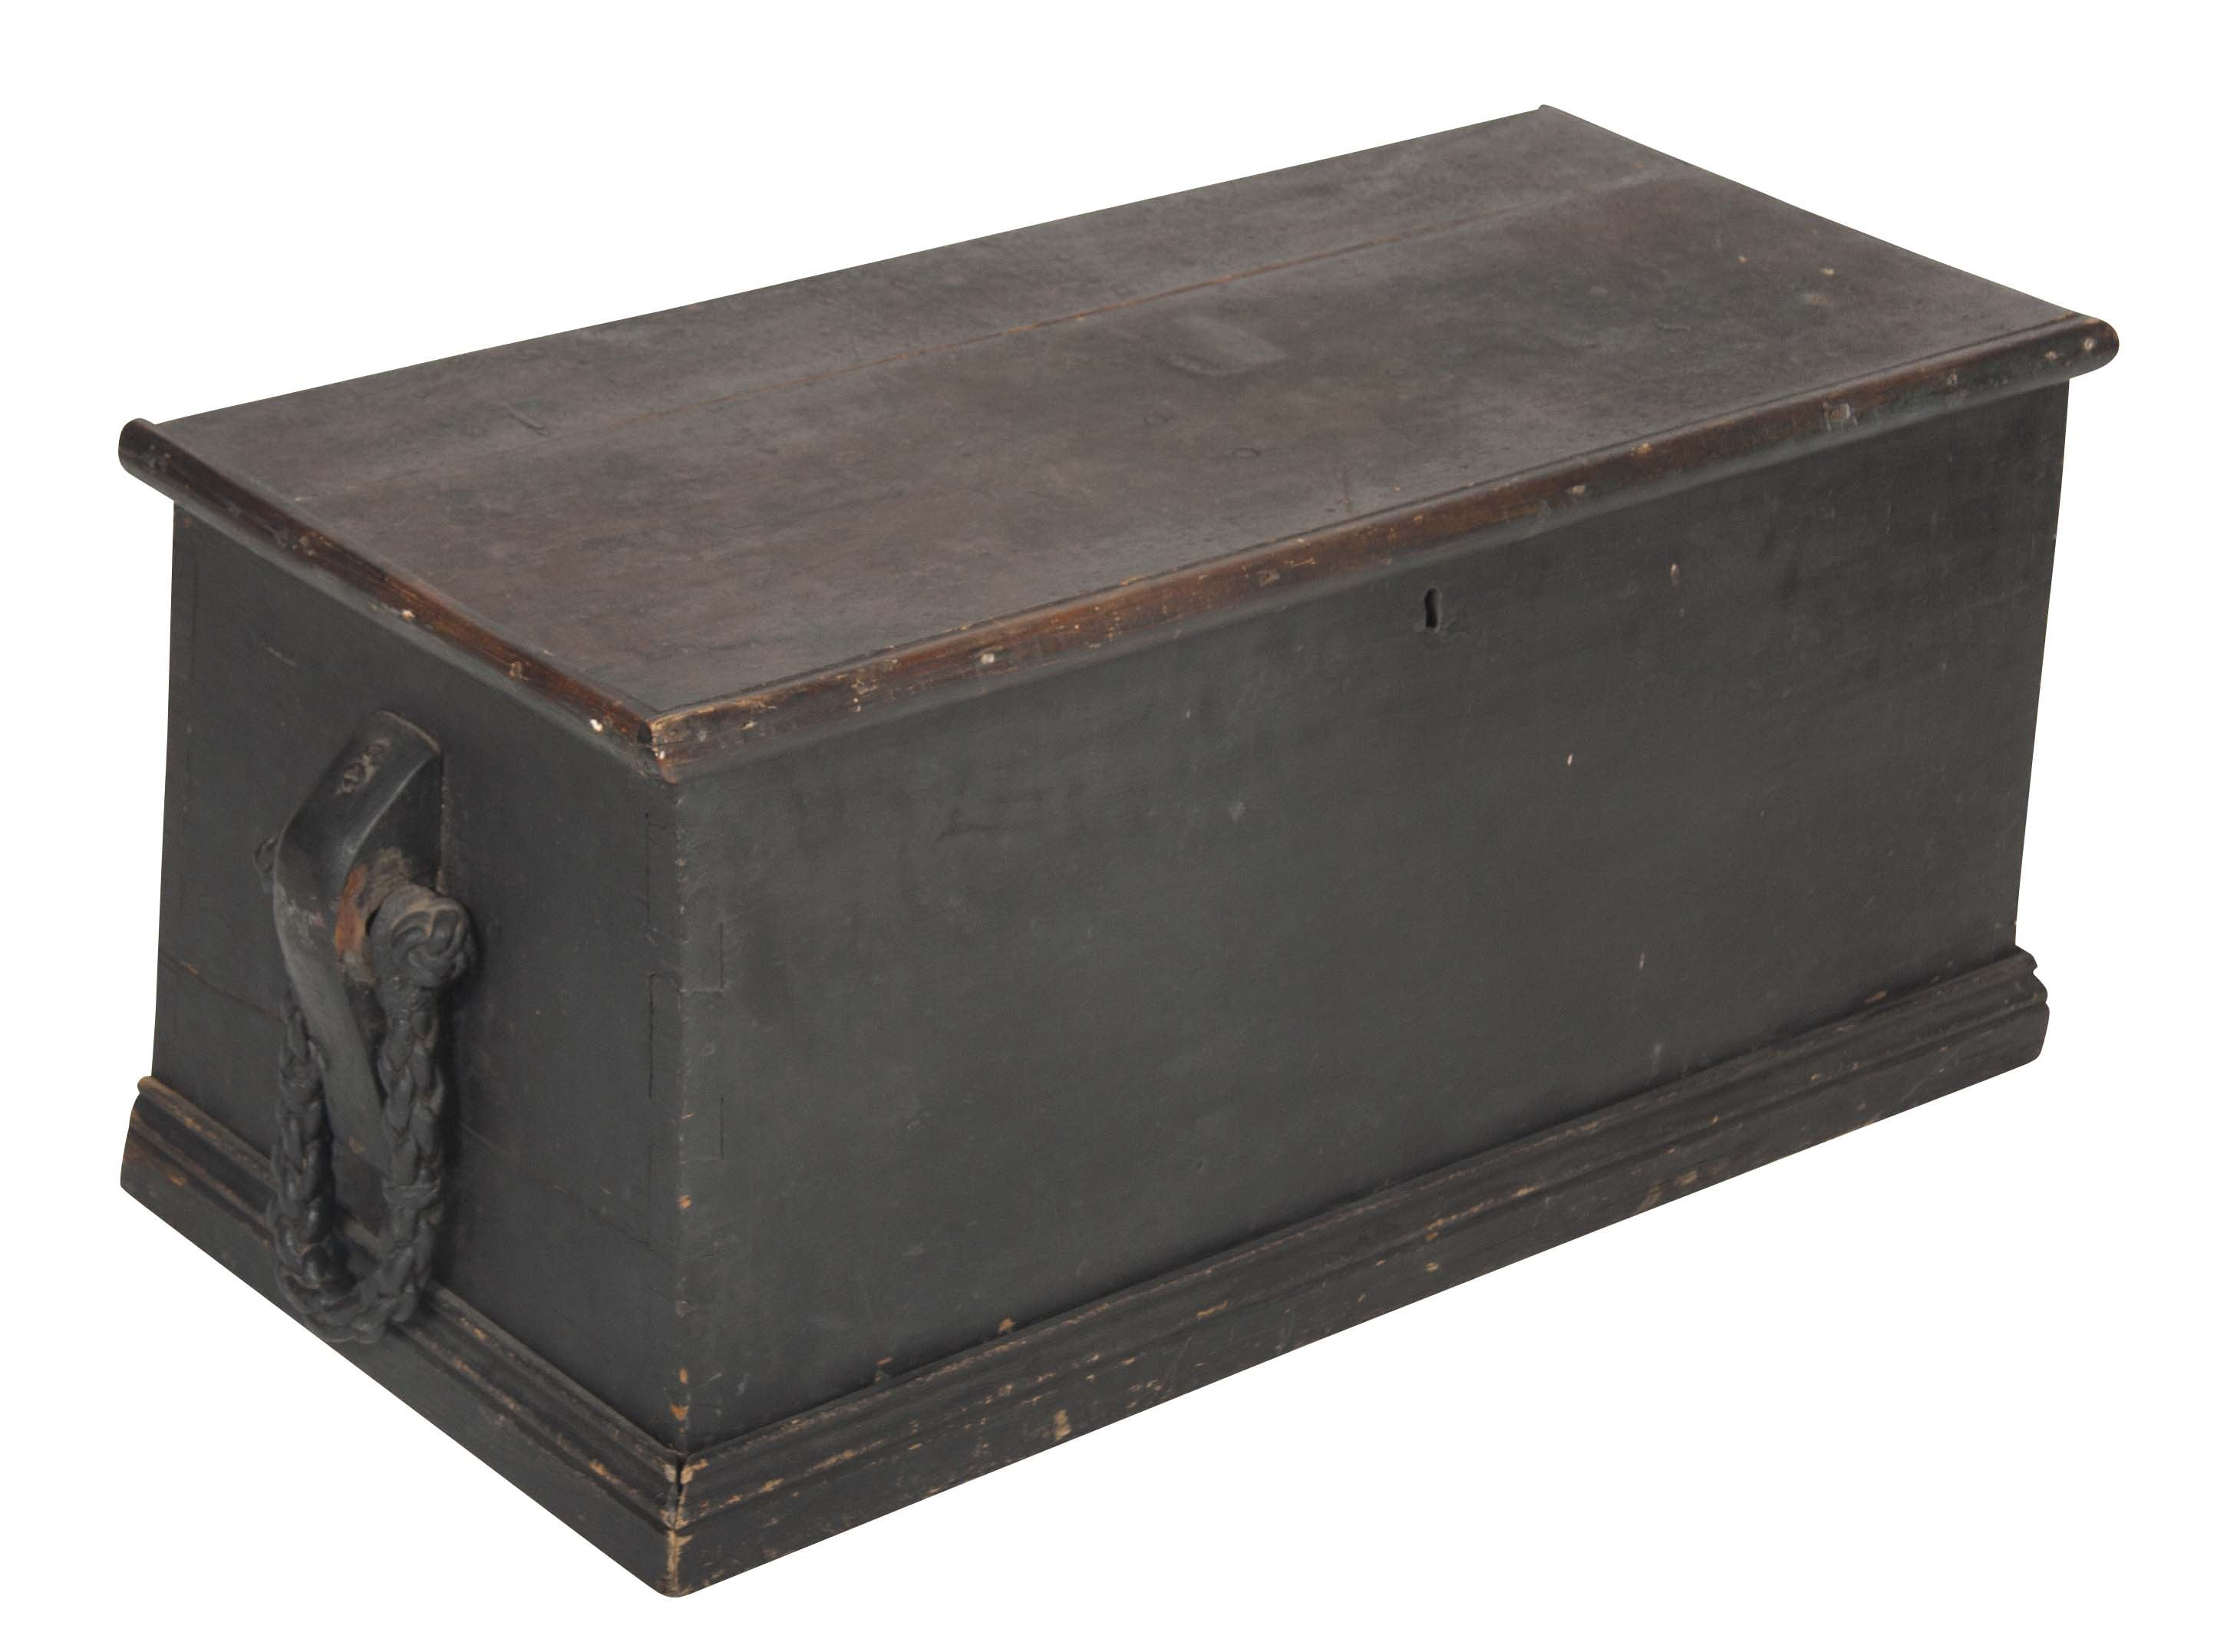 Rare Mid 19th Century American Sea Chest / Trunk or Coffee Table